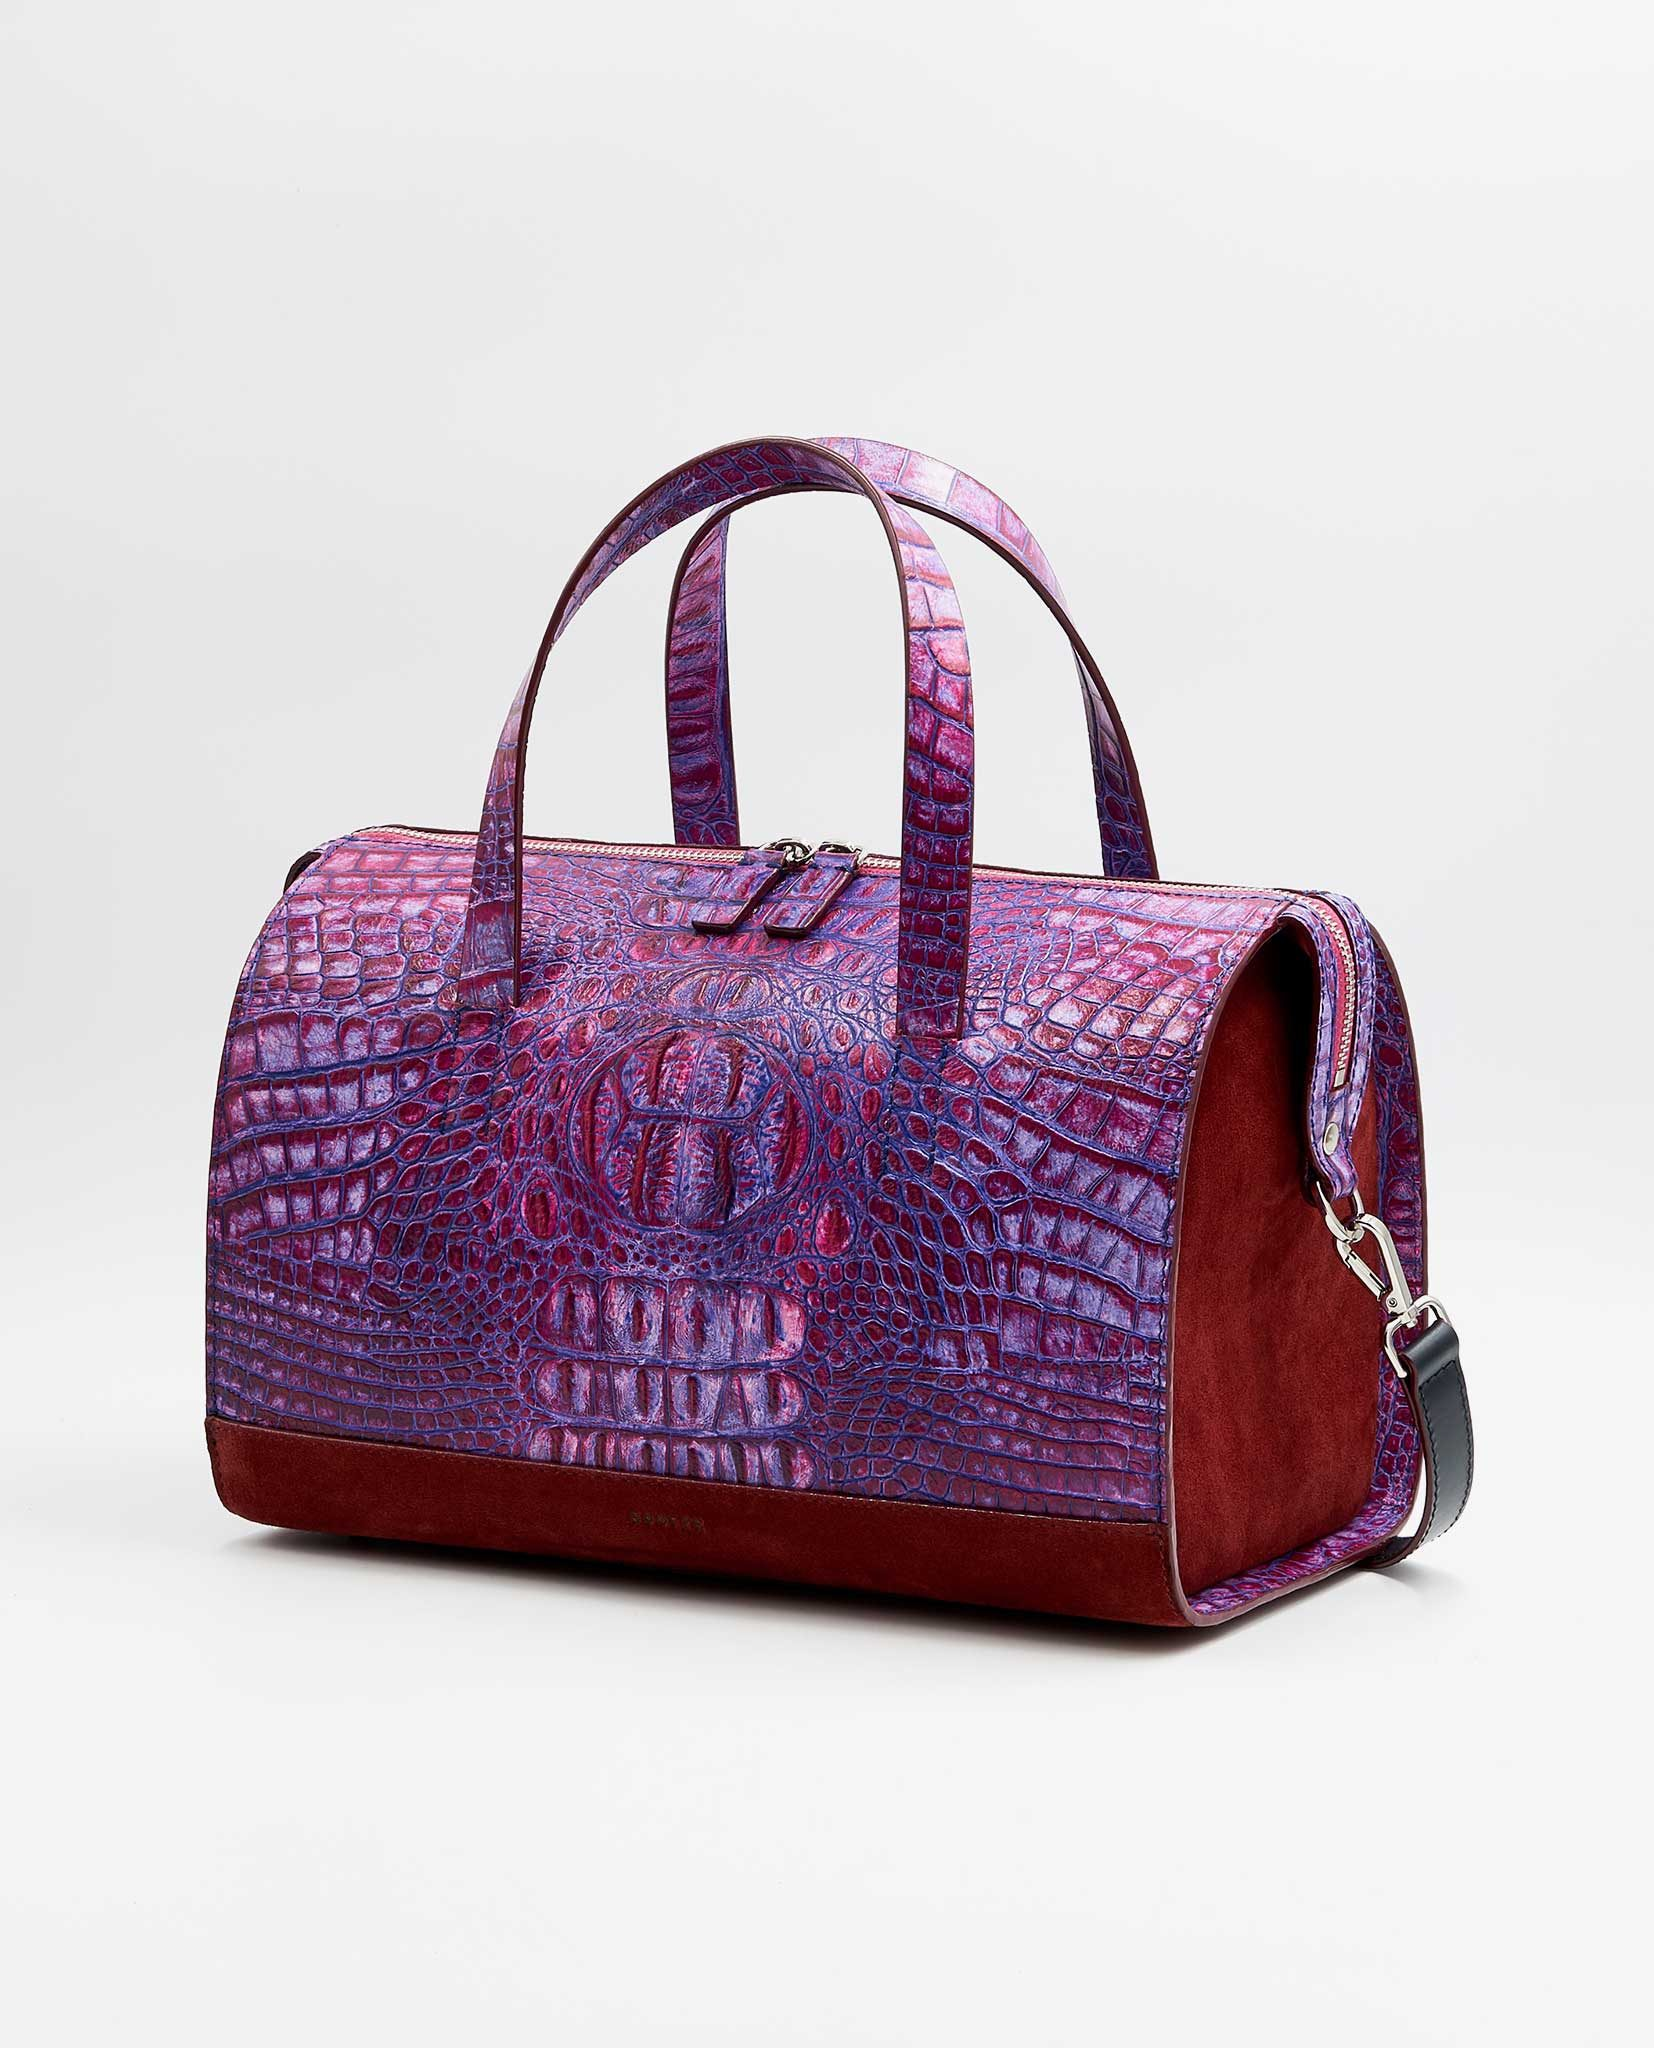 SOOFRE-Berlin-unique-Bowler-Bag-croco-purple-lilac-burgundy-SIDES